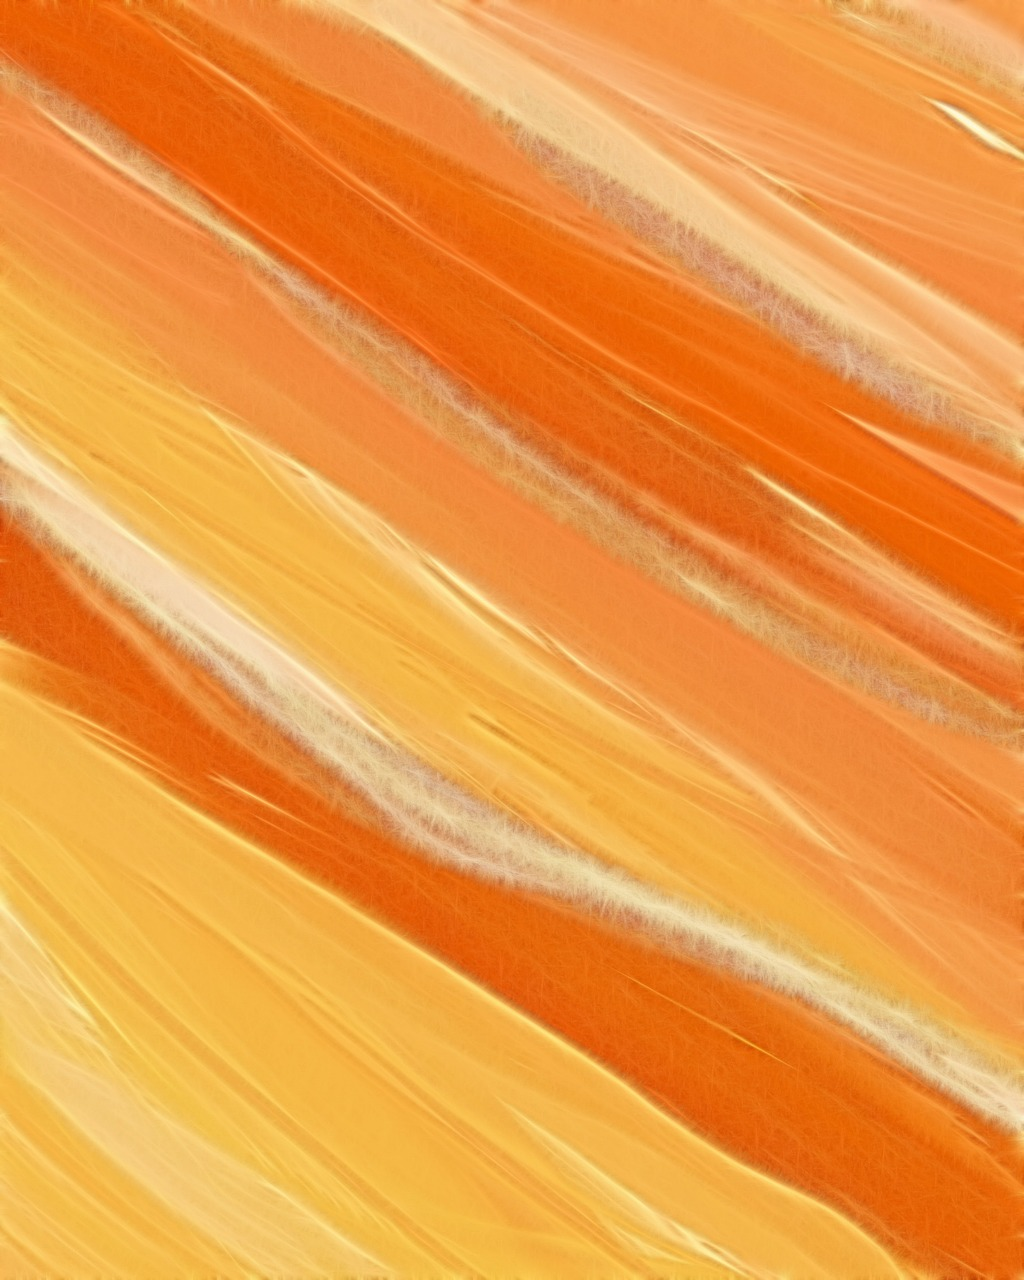 background orange striped free photo